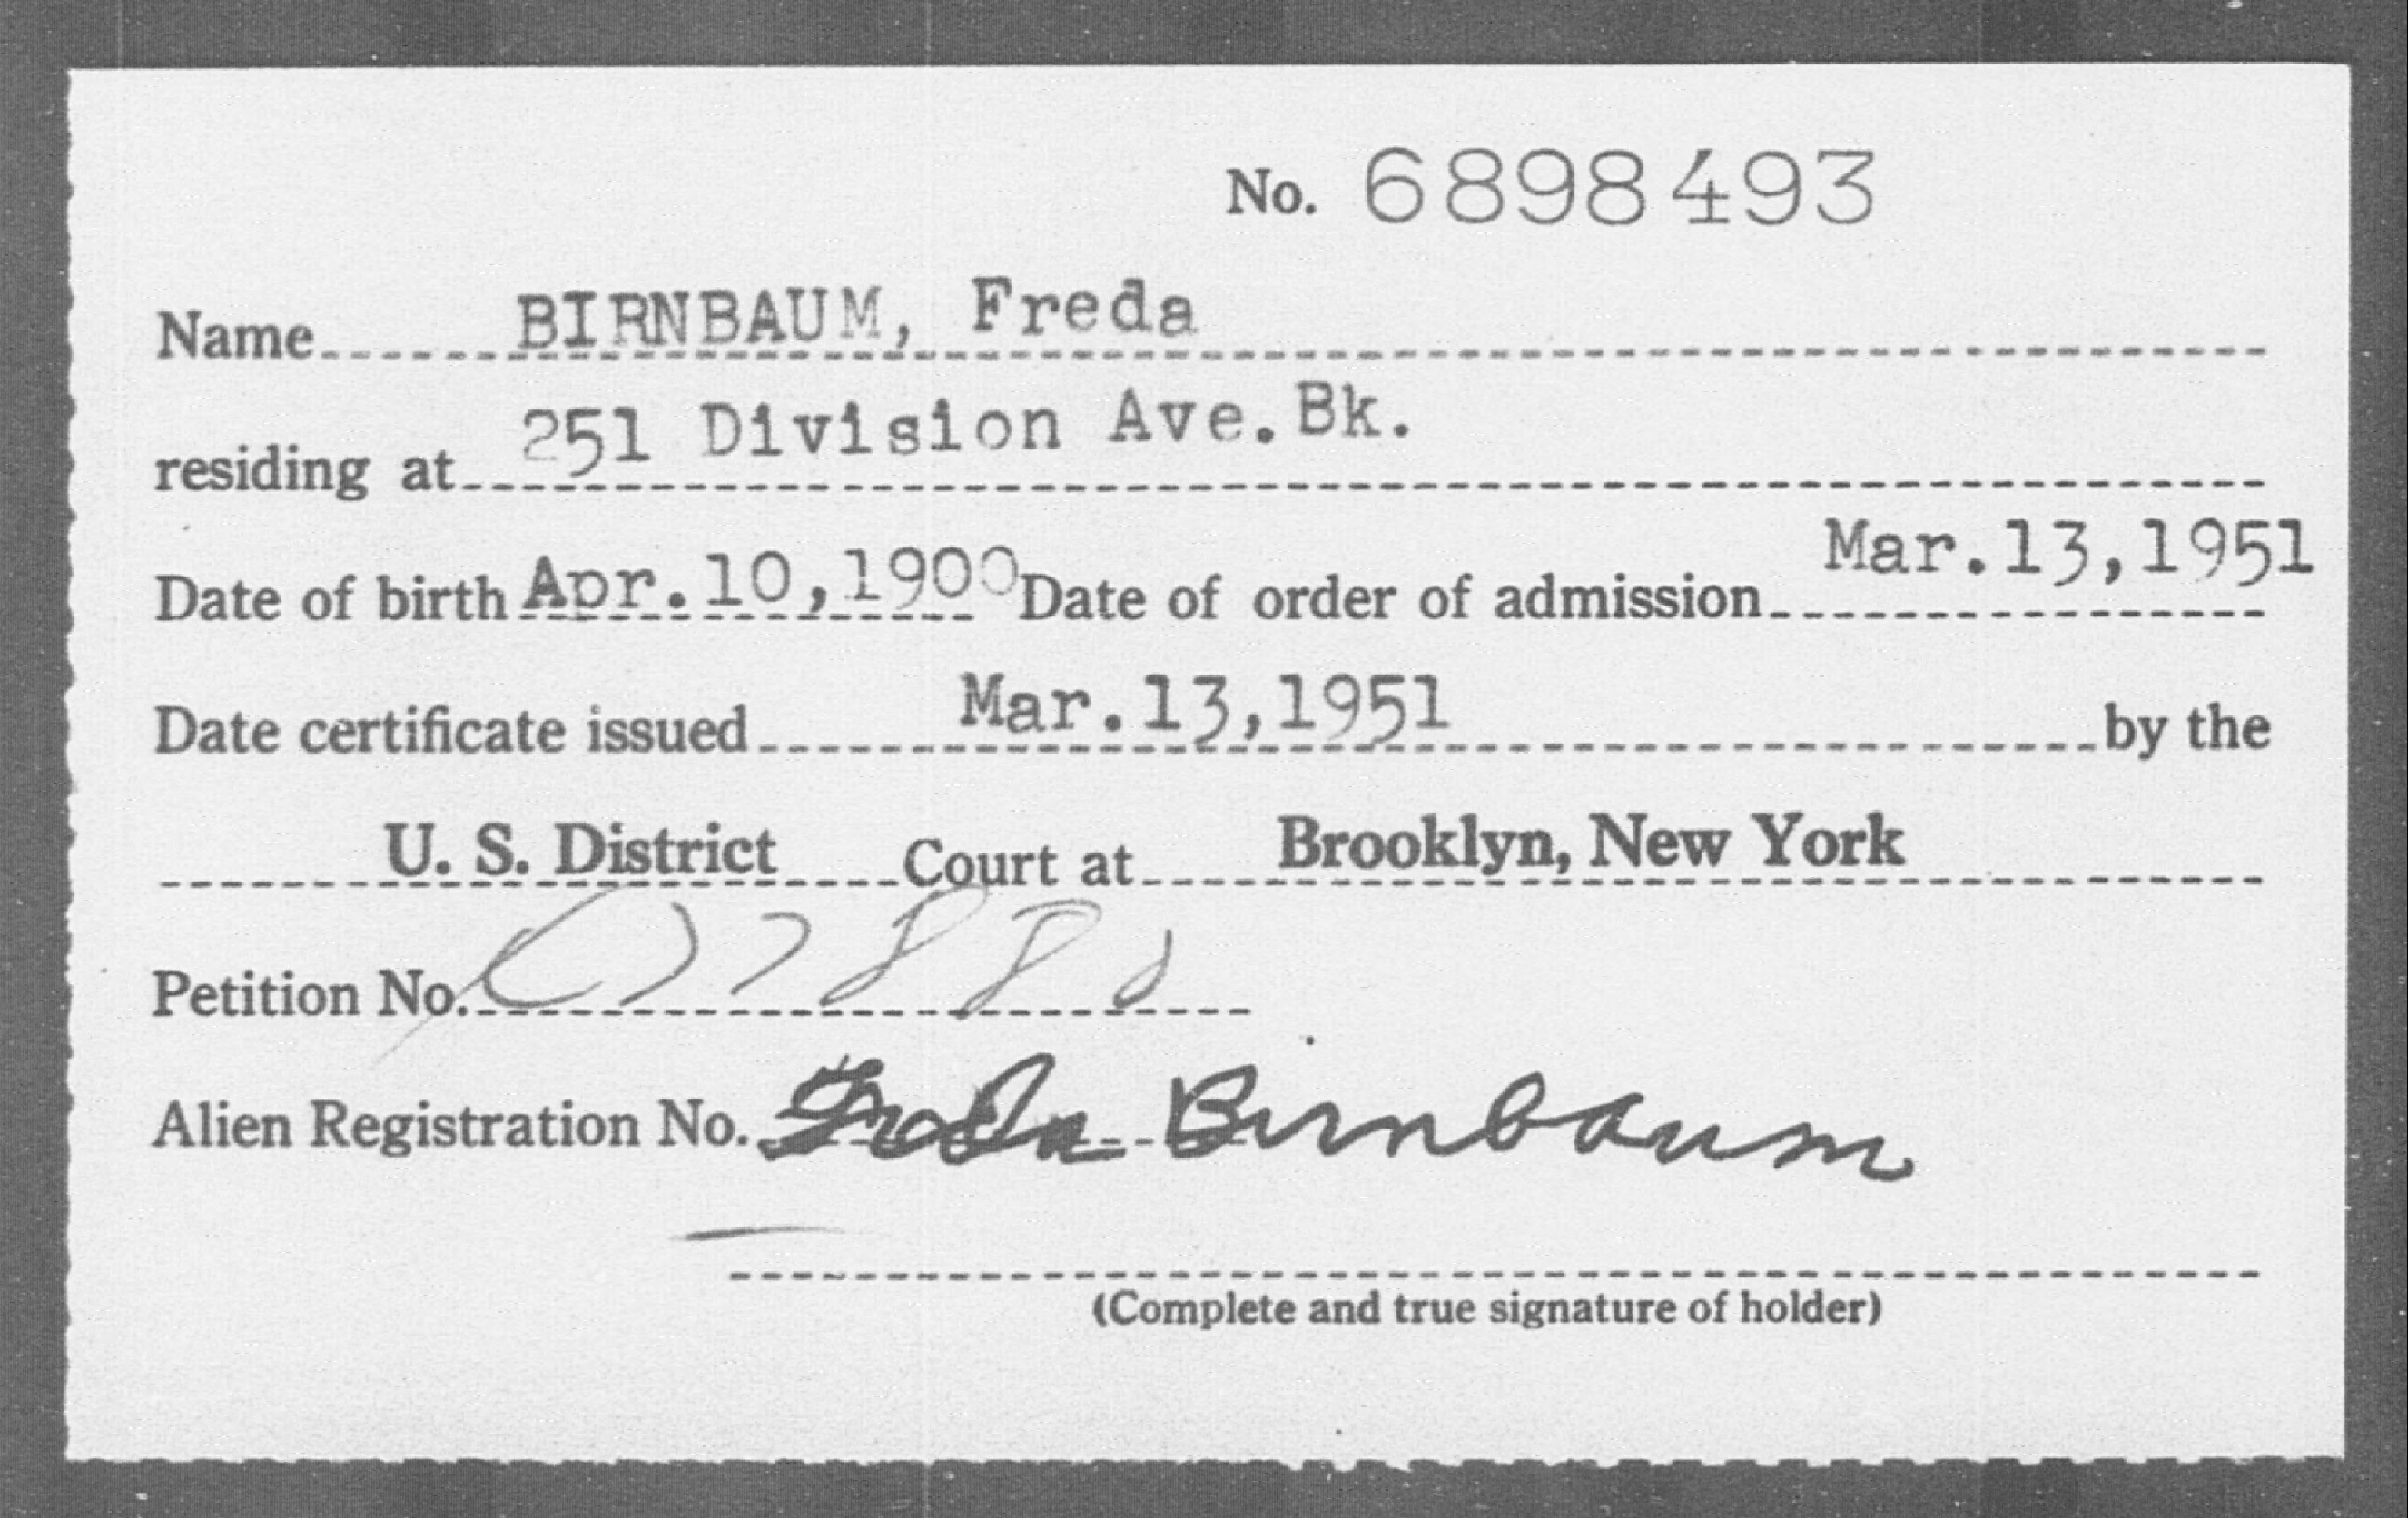 BIRNBAUM, Freda - Born: 1900, Naturalized: 1951